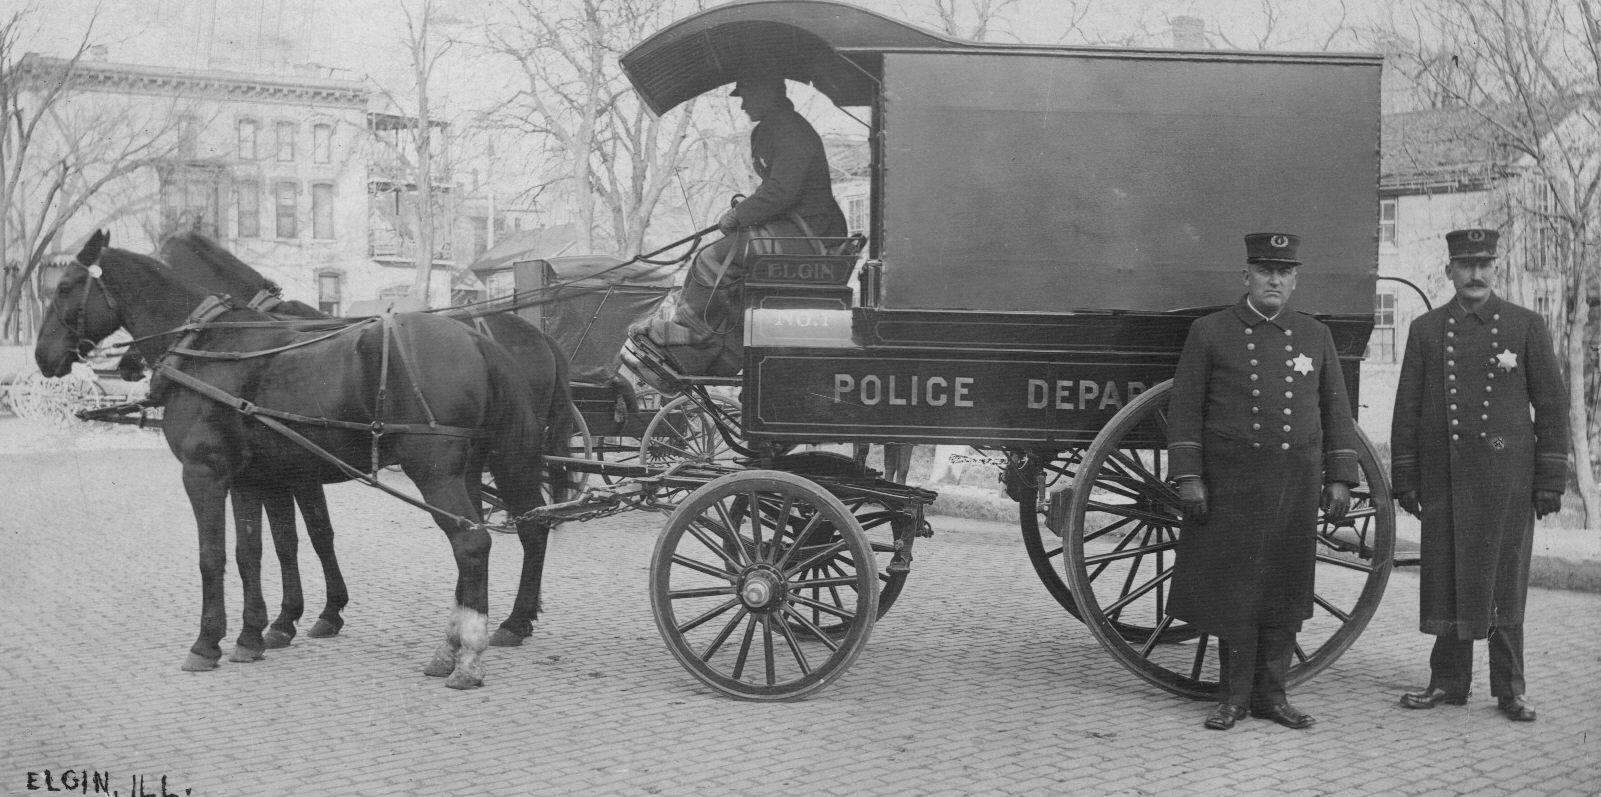 Police-Department-1910.jpg